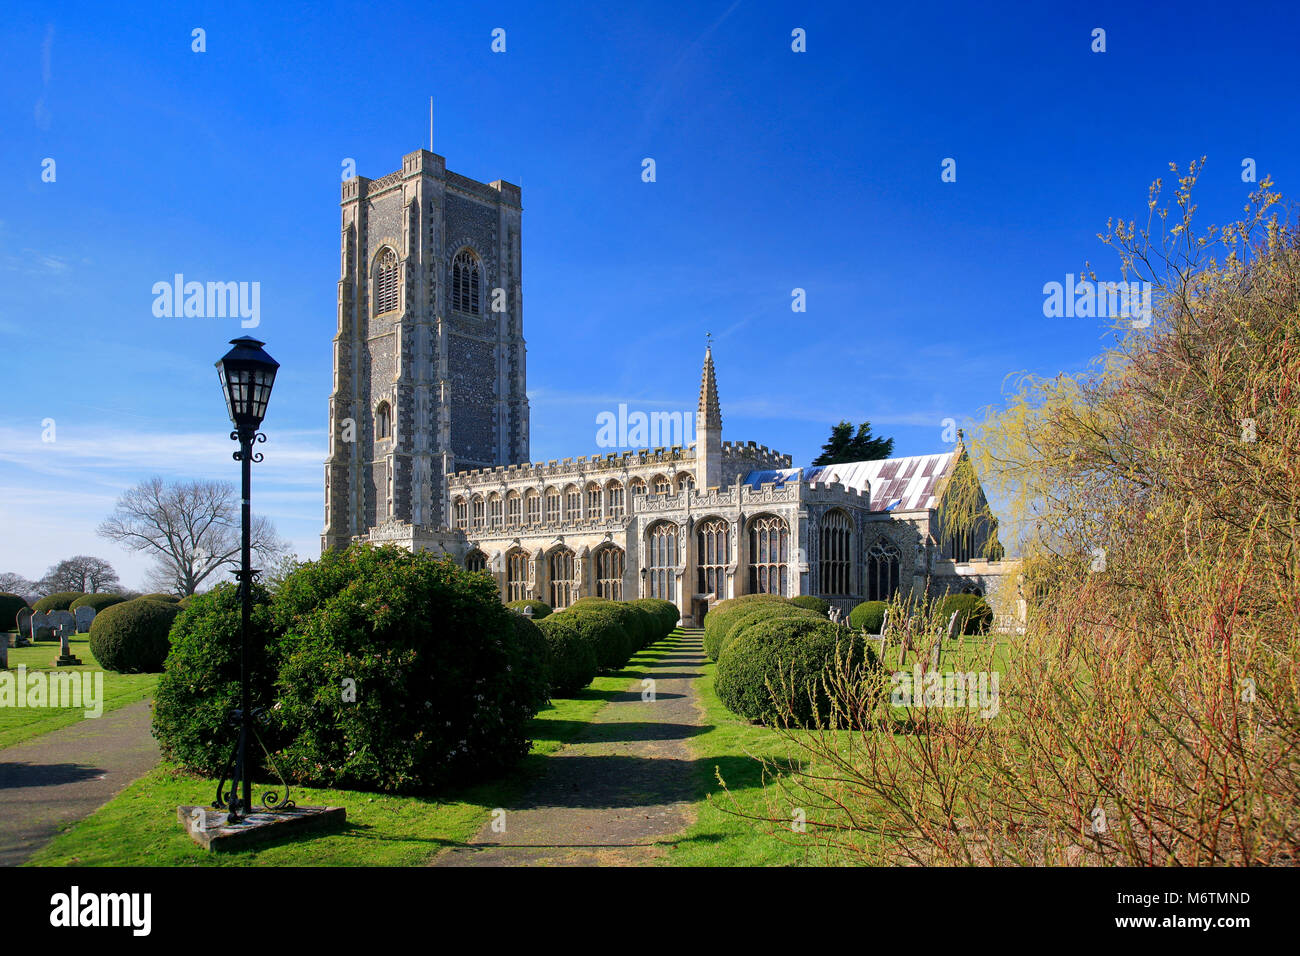 The parish church of St Peter and St Paul, Lavenham village, Suffolk County, England, UK Stock Photo